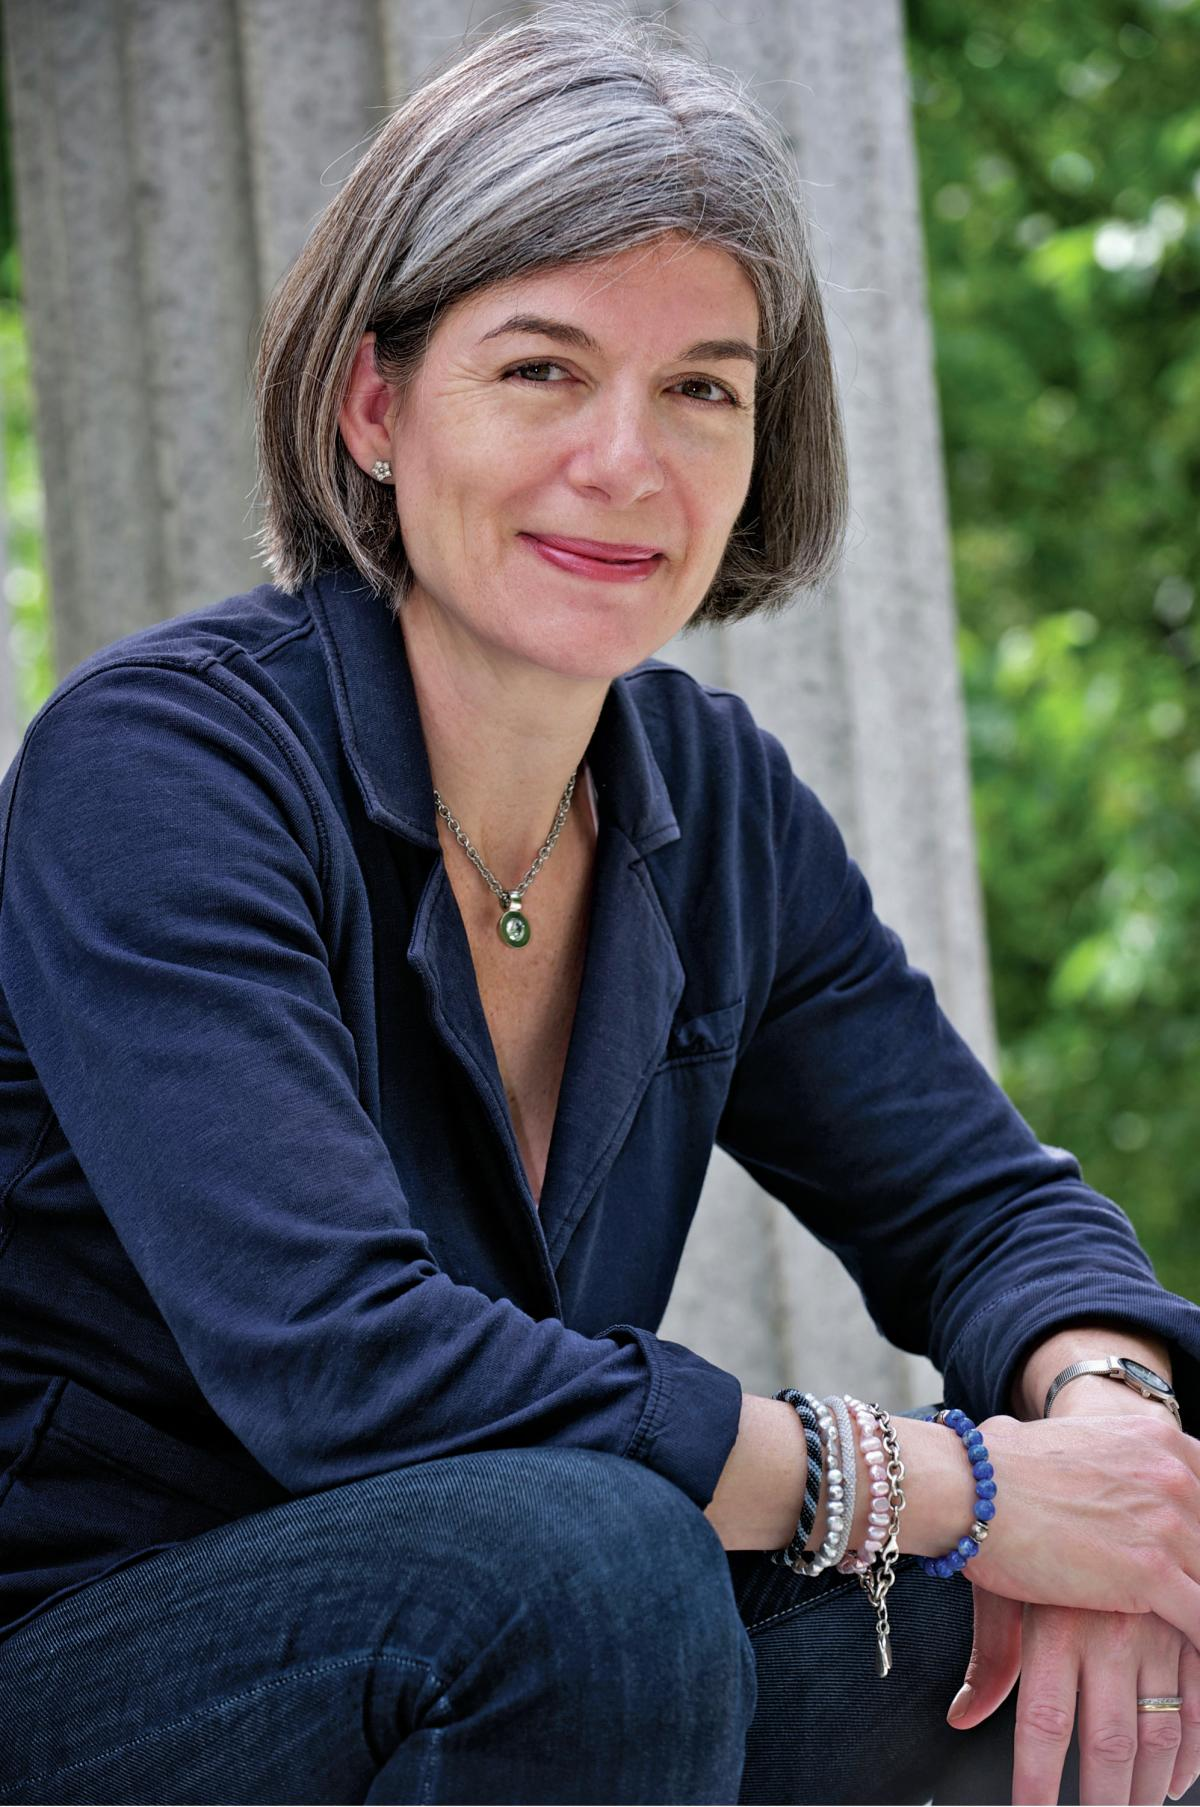 Claire Messud is also the author of  When the World Was Steady, The Hunters, The Last Life and The Emperor's Children.